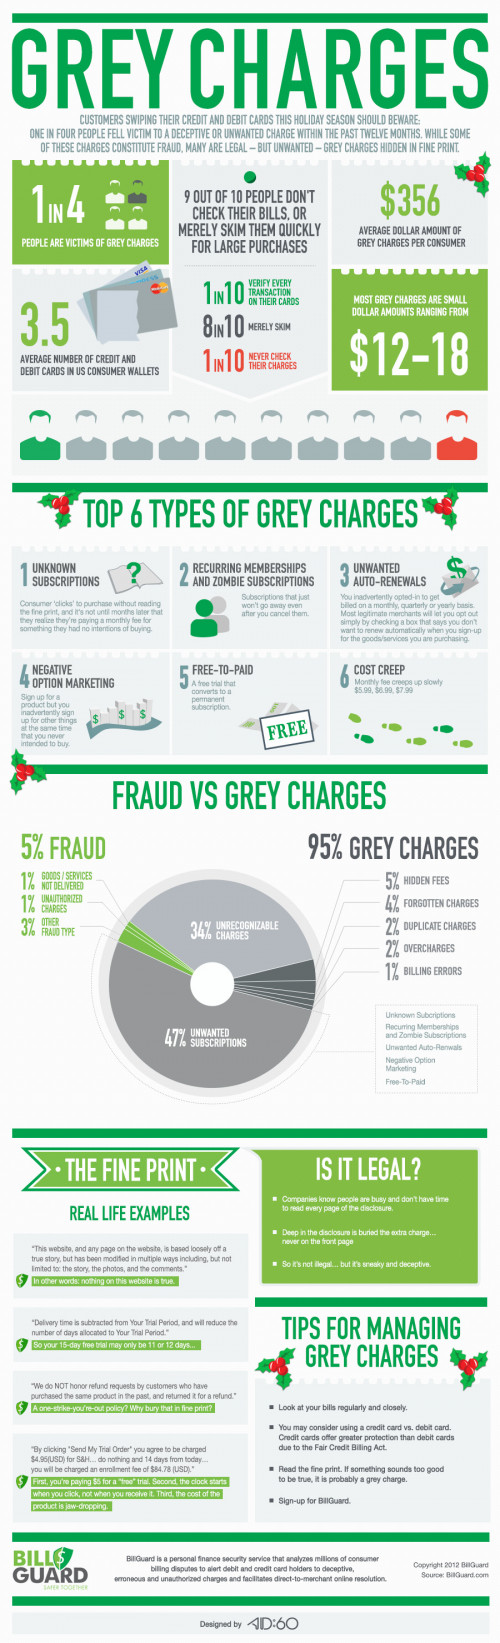 What Are Grey Charges?